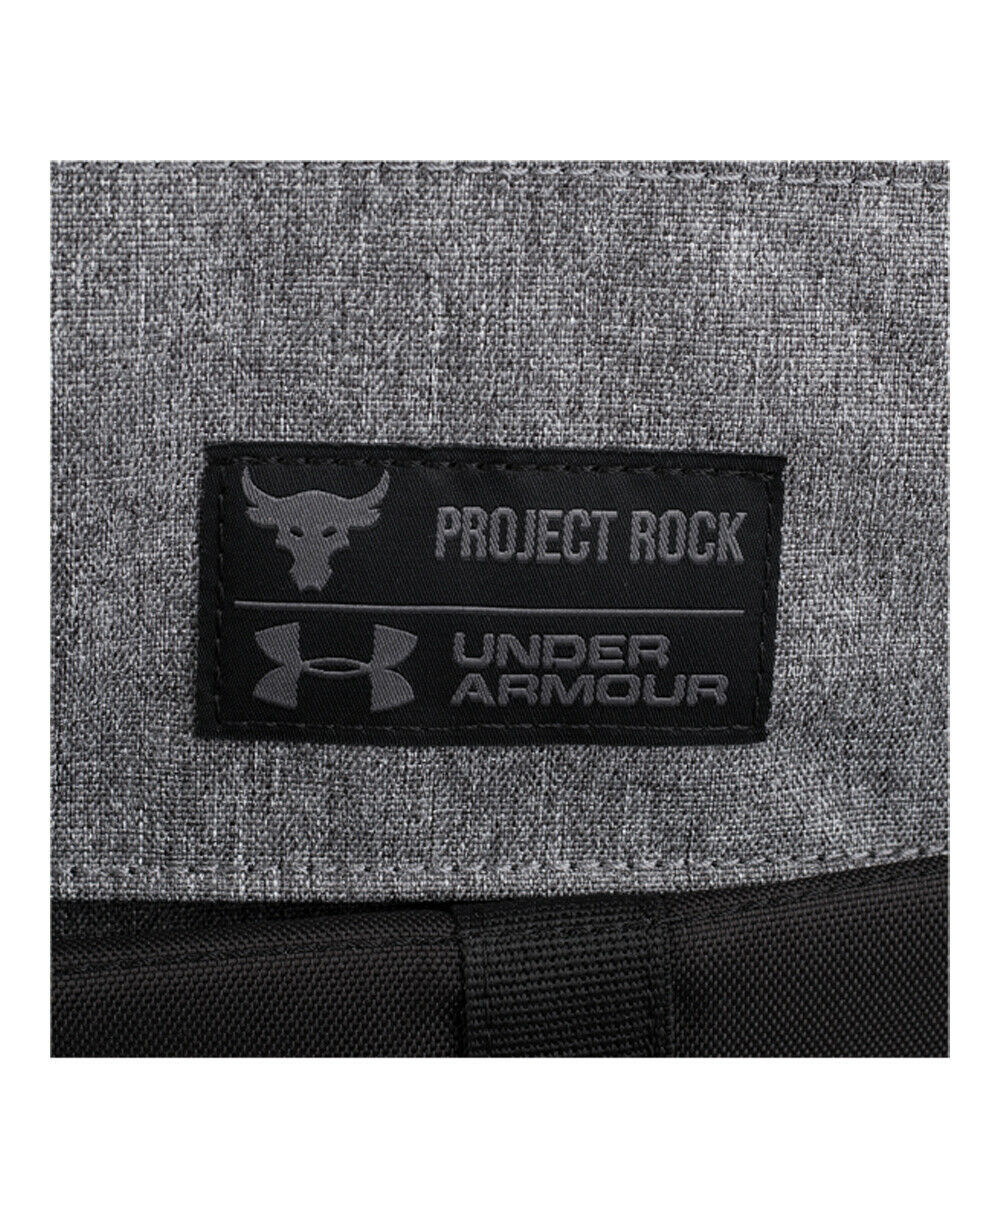 """UNDER ARMOUR UA PROJECT ROCK REGIMENT BACKPACK """"THE ROCK"""" BLACK/GREY NEW W/TAGS image 5"""